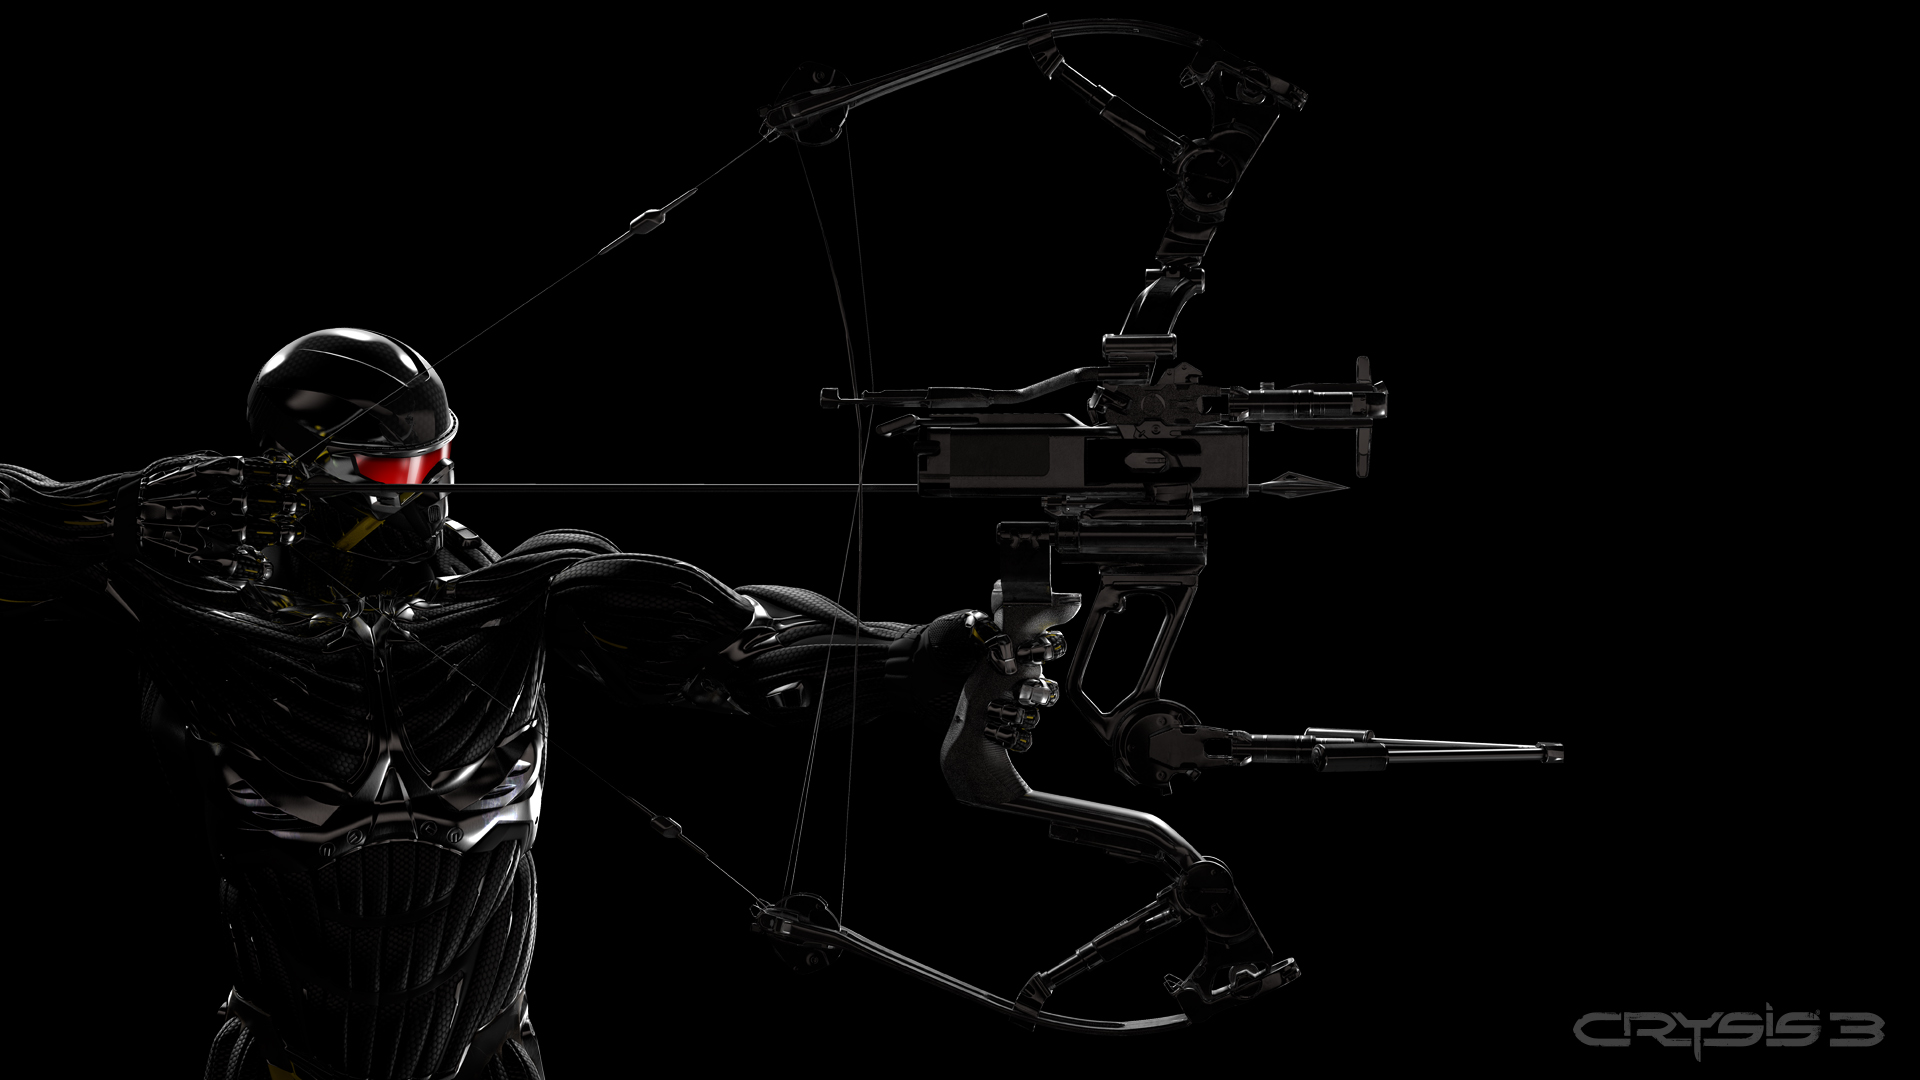 Crysis Wallpaper 1920×1080 Pixel